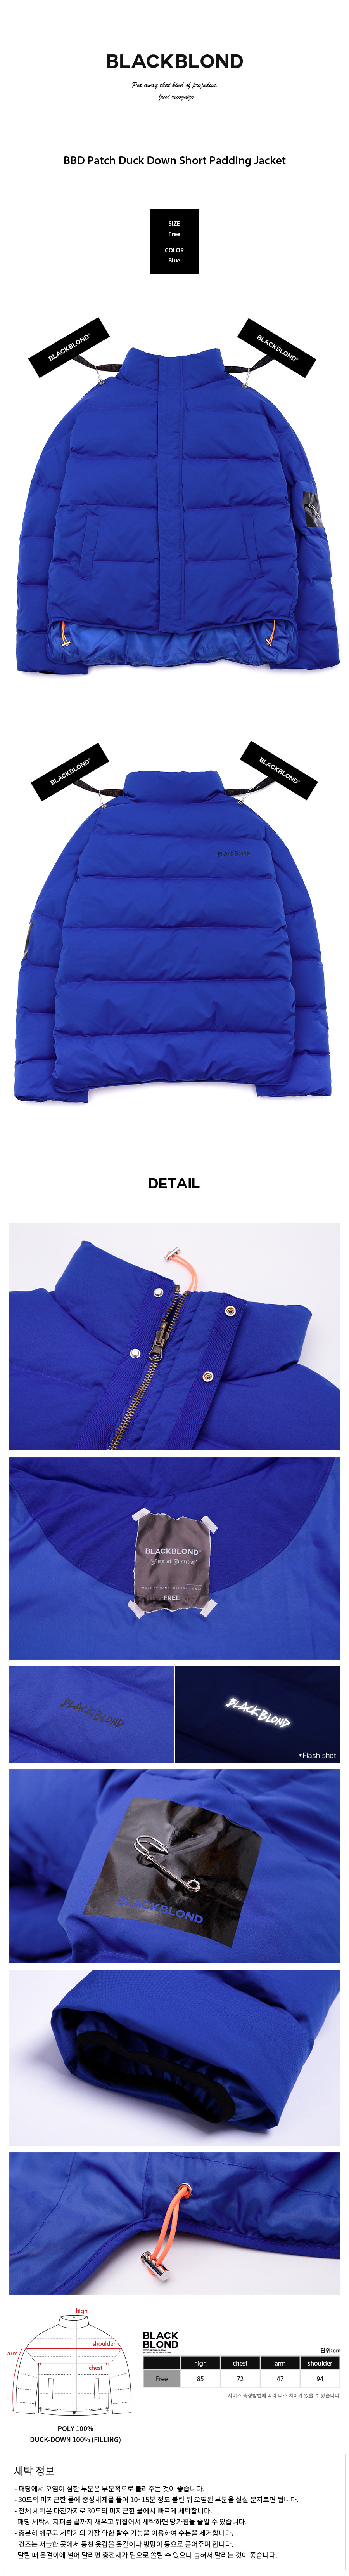 BLACKBLOND - BBD Patch Duck Down Short Padding Jacket (Blue)